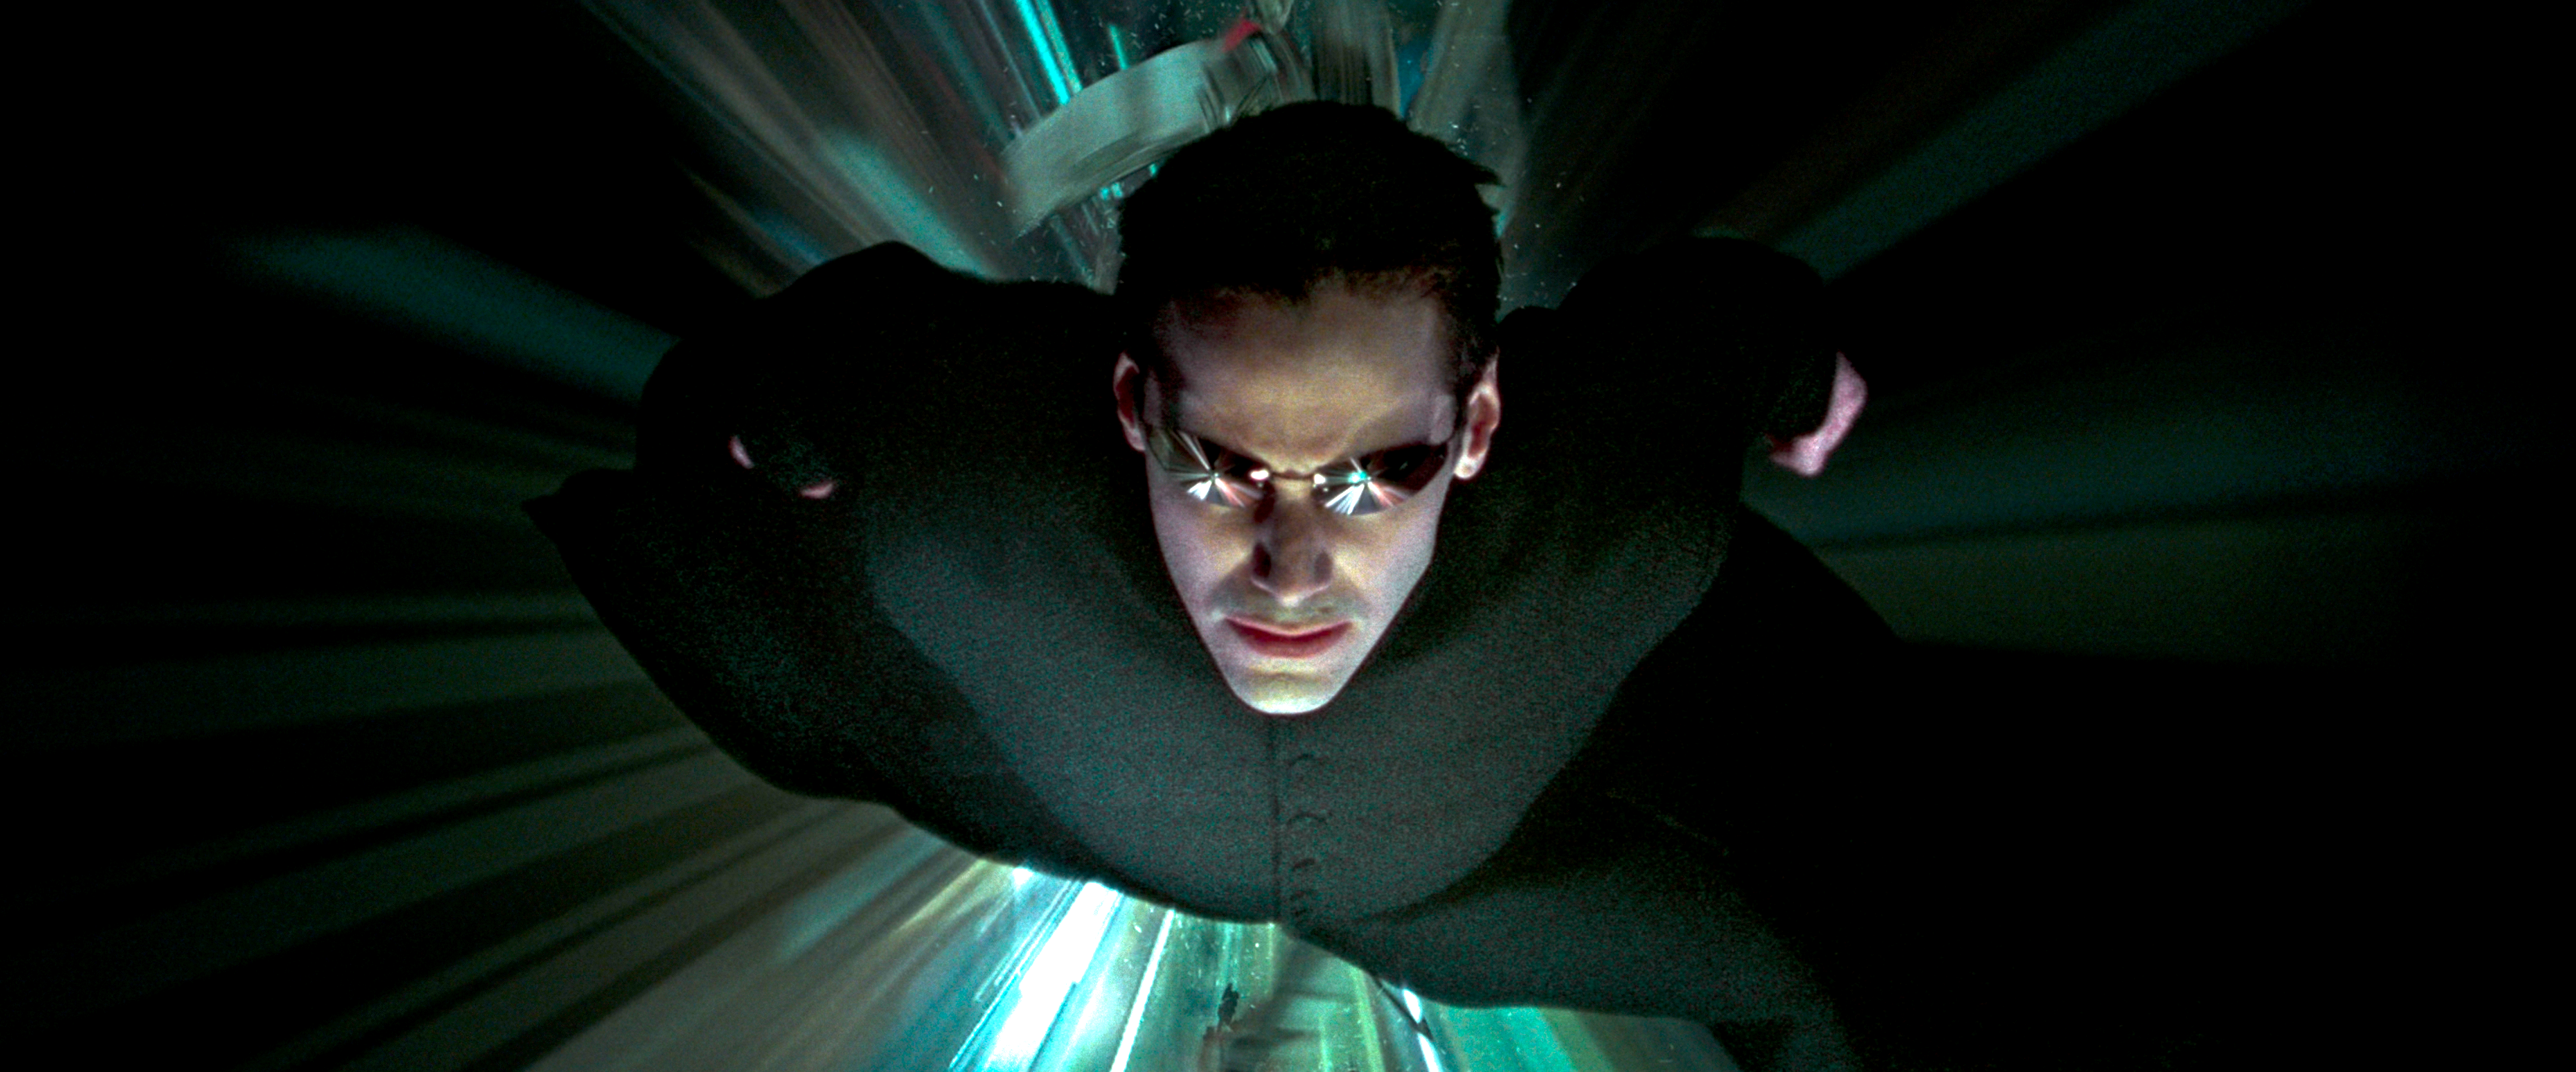 The Matrix 4 in the works with Keanu Reeves, Carrie-Anne Moss